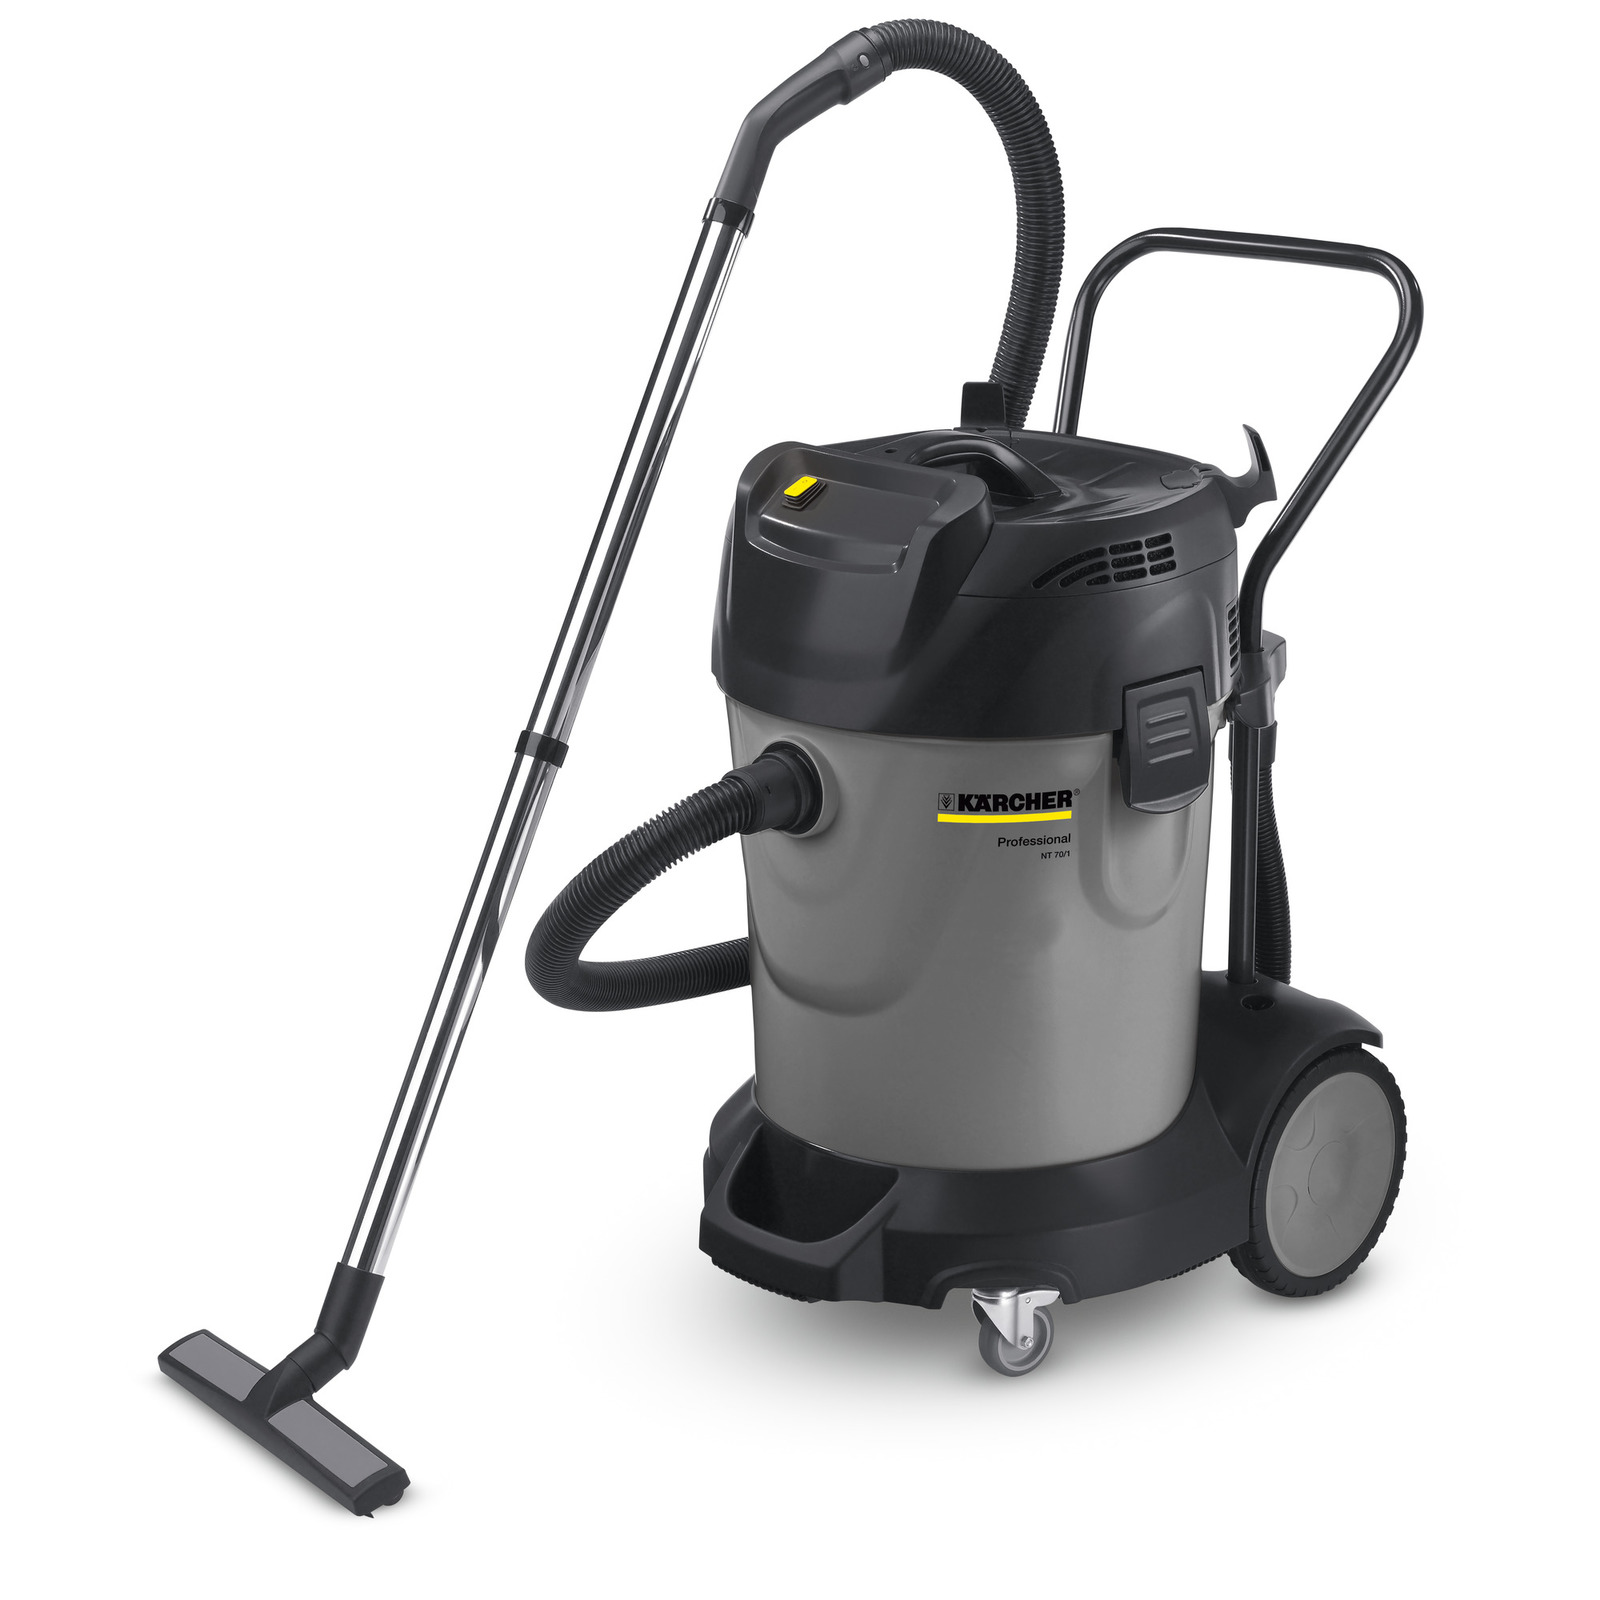 Wet And Dry Vacuum Cleaner Nt 70 1 K 228 Rcher Uk